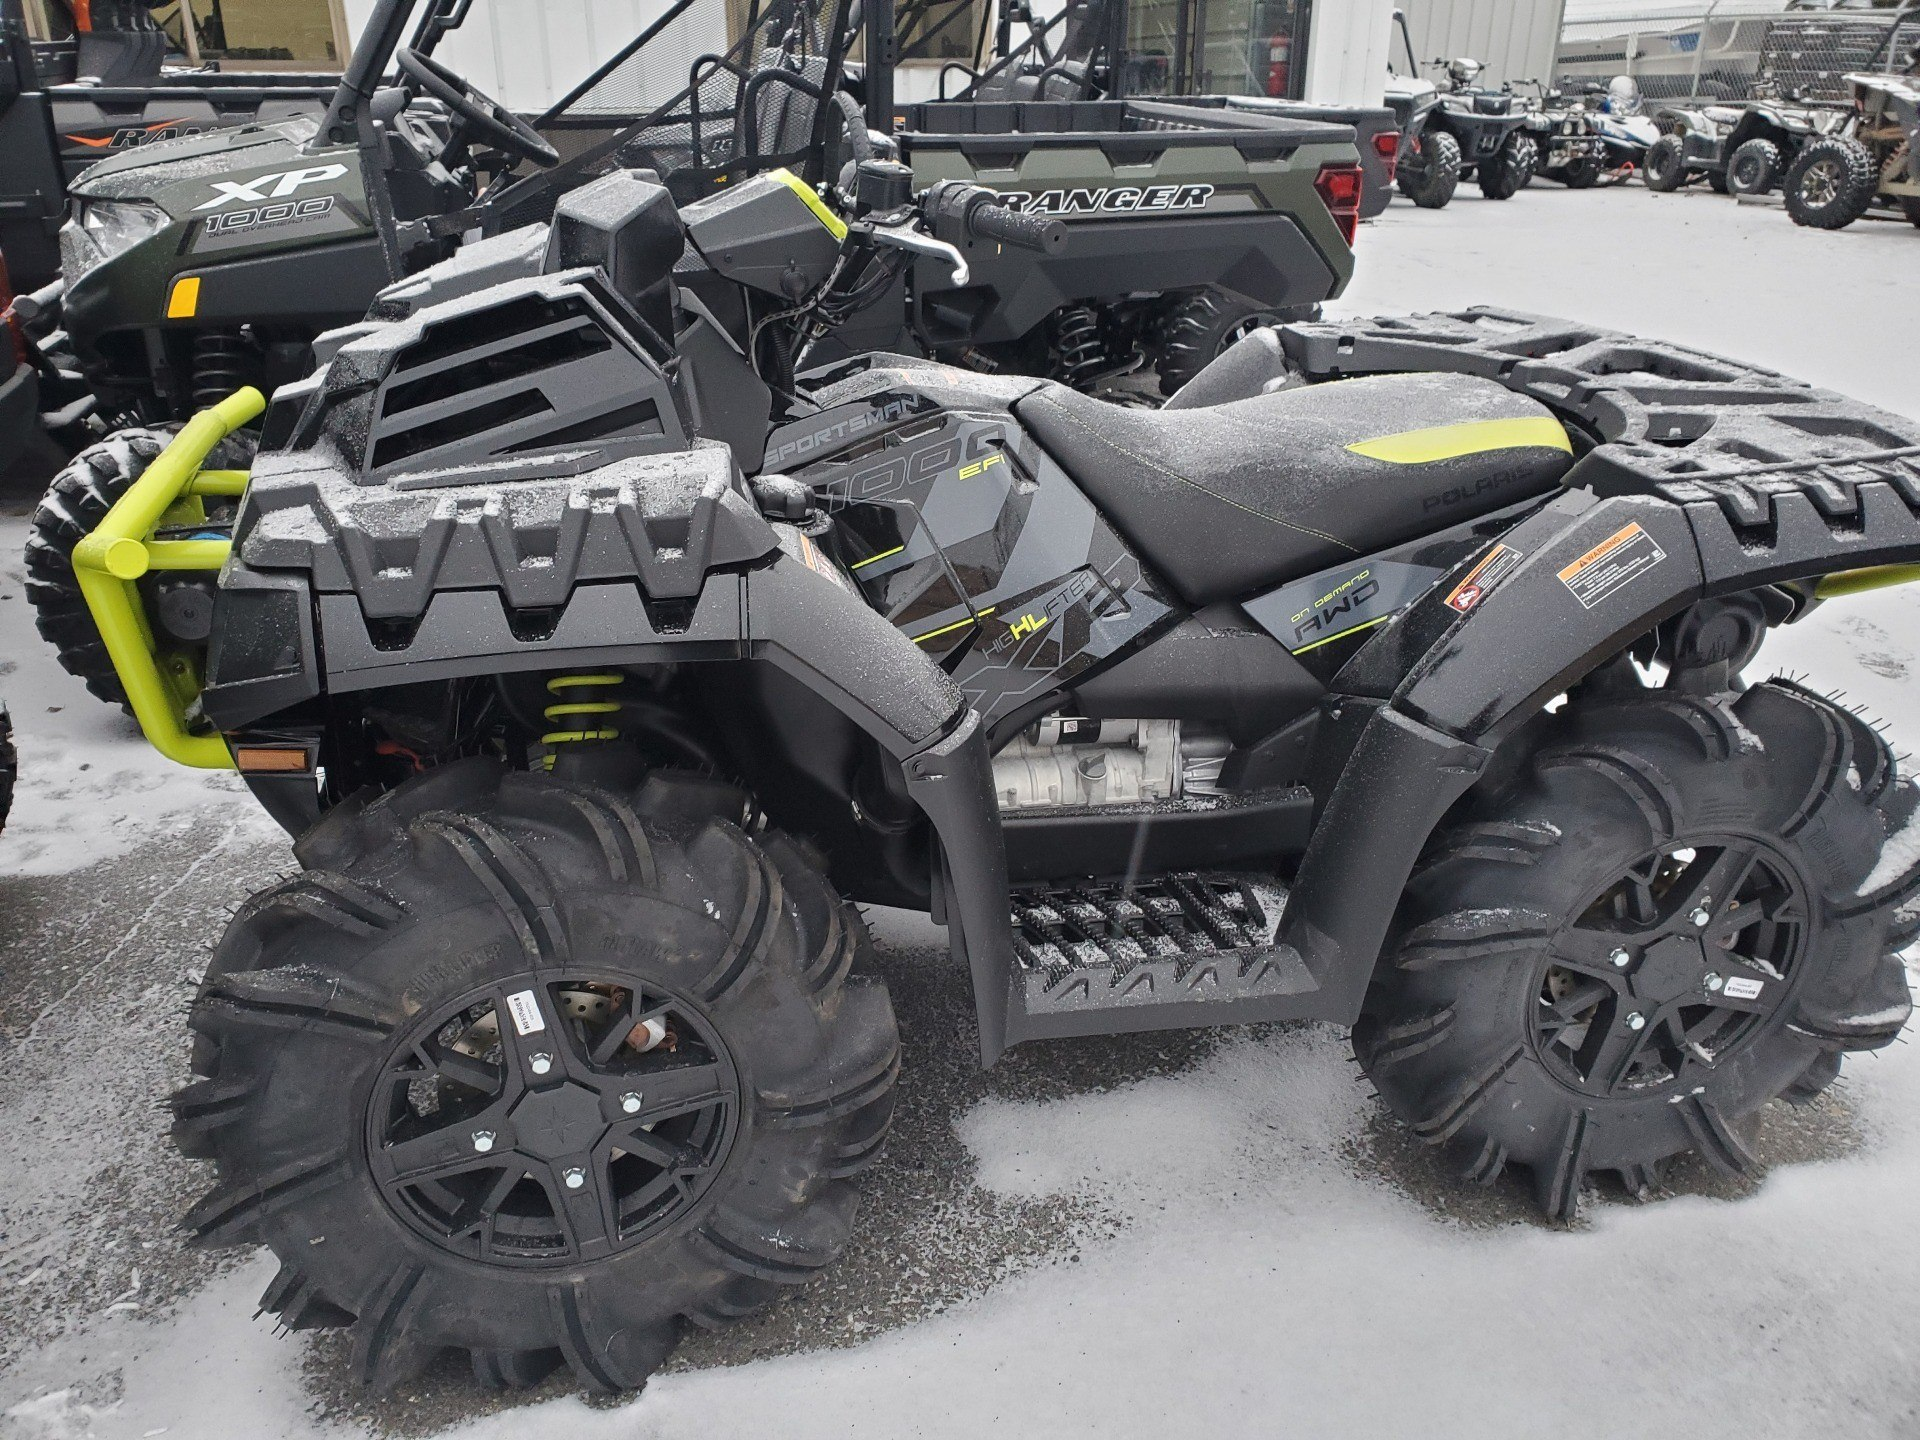 2020 Polaris Sportsman XP 1000 High Lifter Edition in Soldotna, Alaska - Photo 2